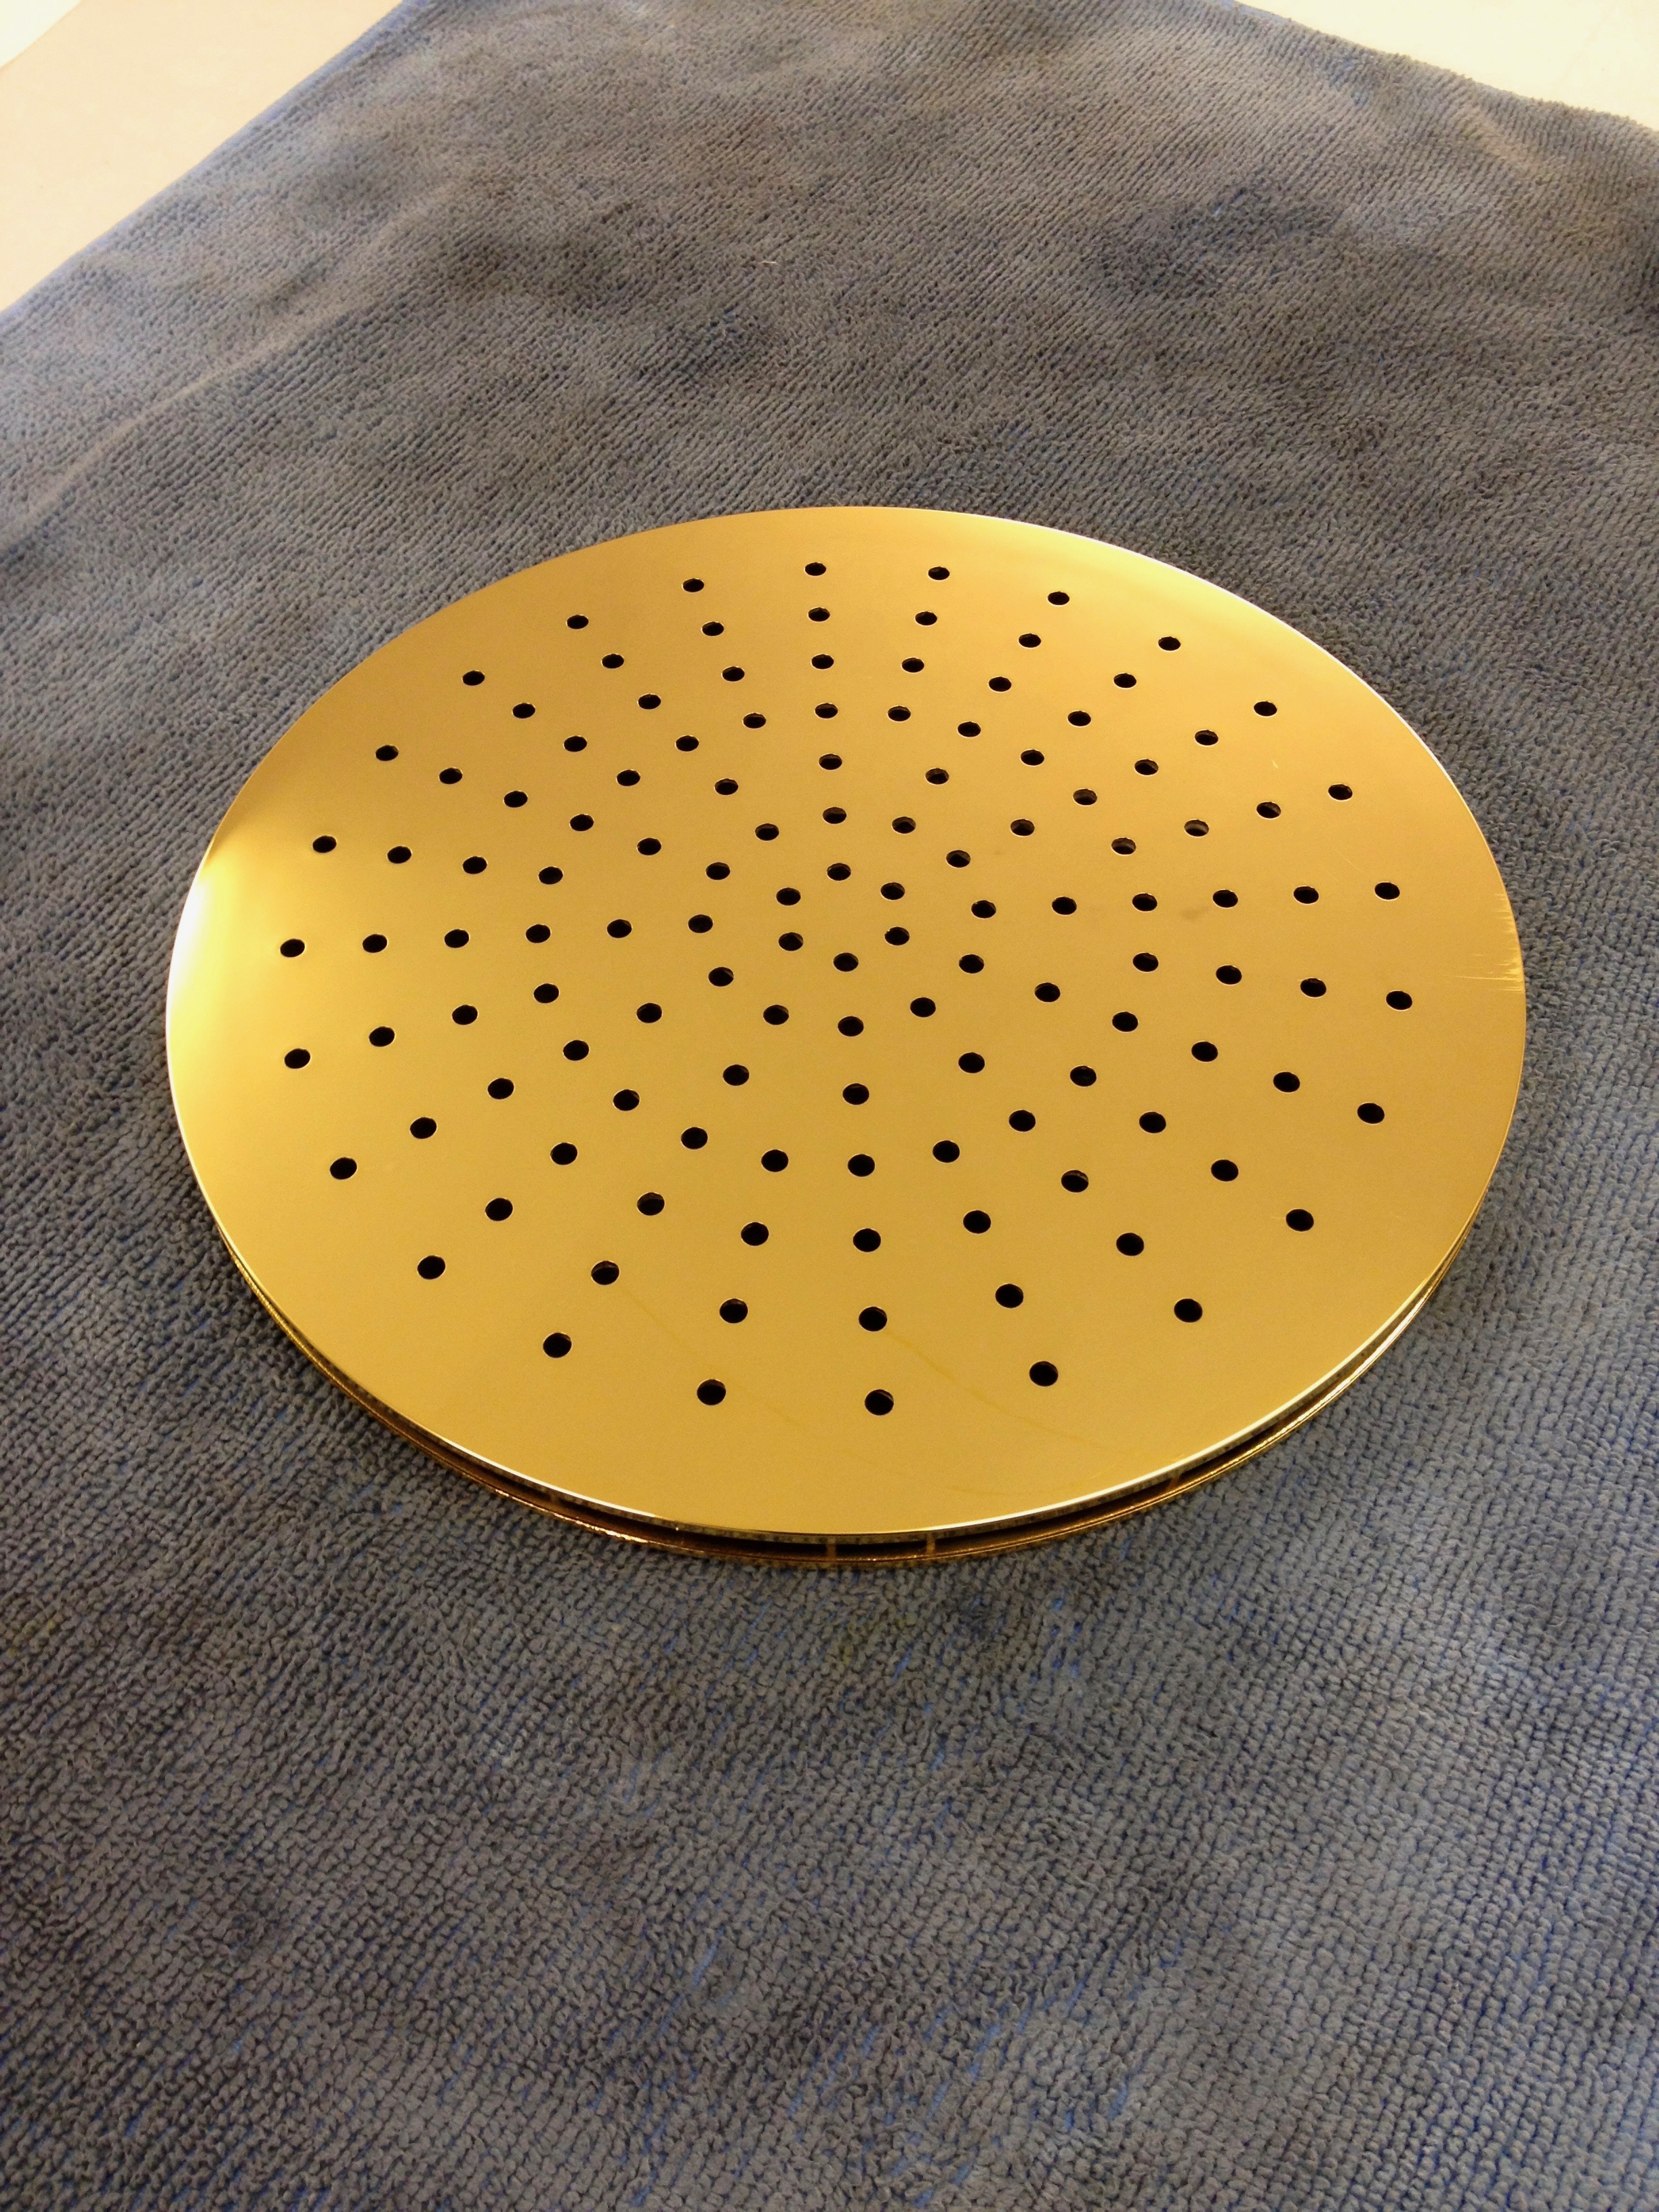 24k gold plated shower head